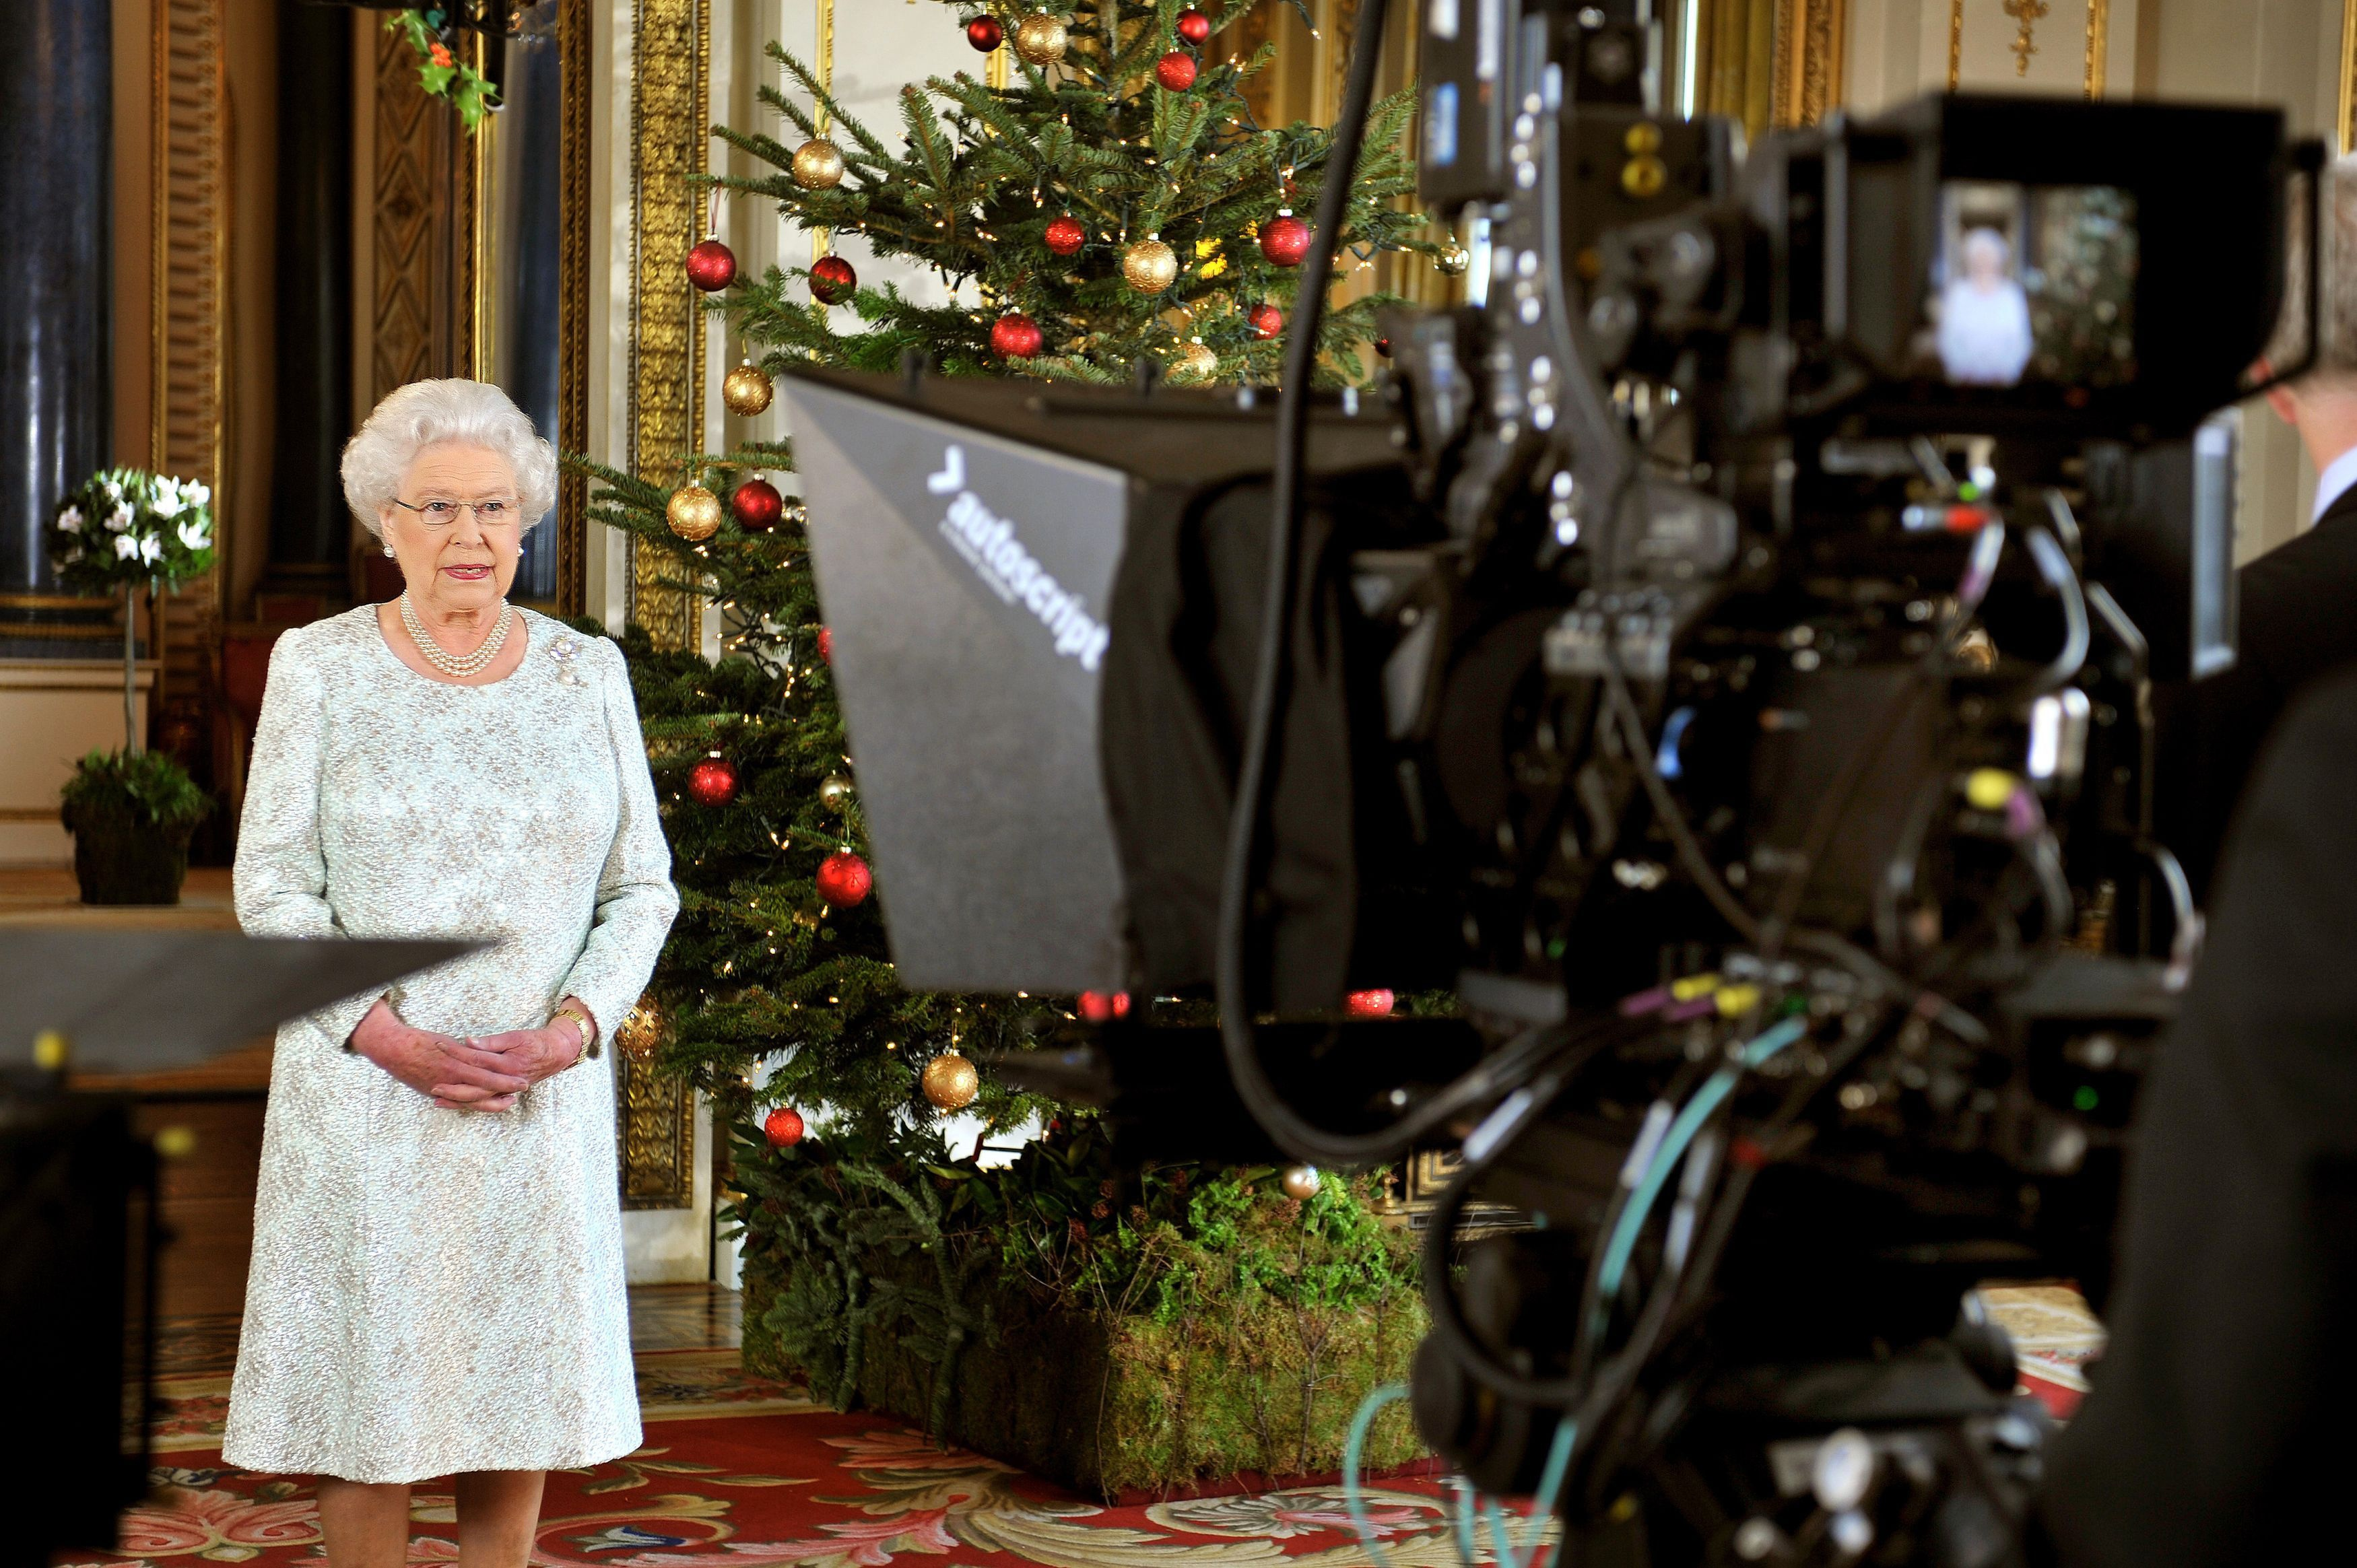 In this picture taken on December 7, 2012 Queen Elizabeth II records her Christmas message to the Commonwealth which is to be broadcast in 3D for the first time, in the White Drawing Room at Buckingham Palace in London .   AFP PHOTO/POOL/ John Stillwell        (Photo credit should read JOHN STILLWELL/AFP via Getty Images)